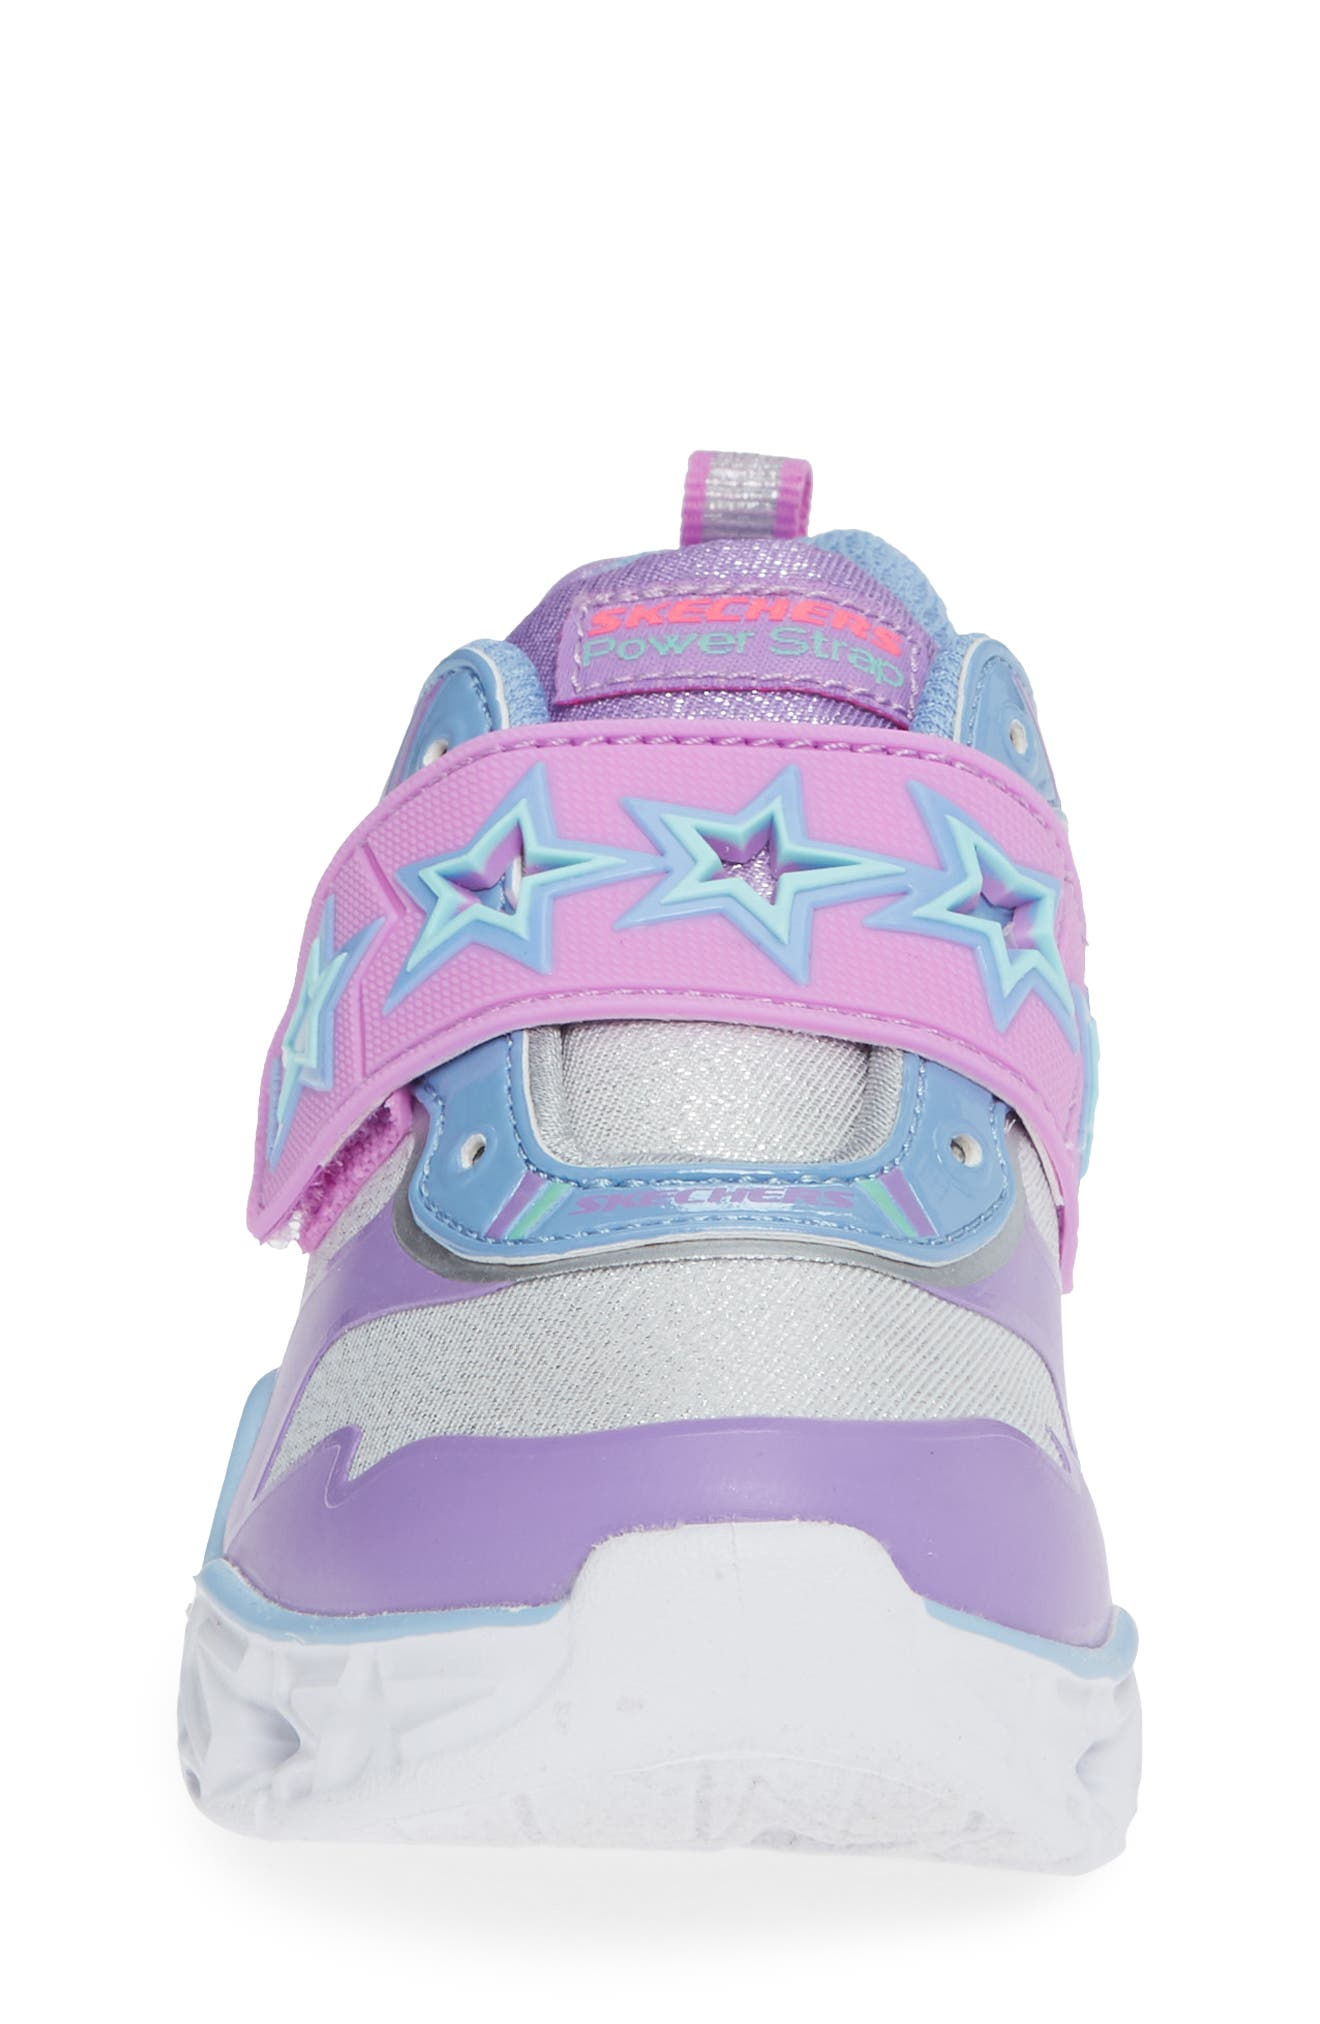 Galaxy Lights Sneakers,                             Alternate thumbnail 4, color,                             500